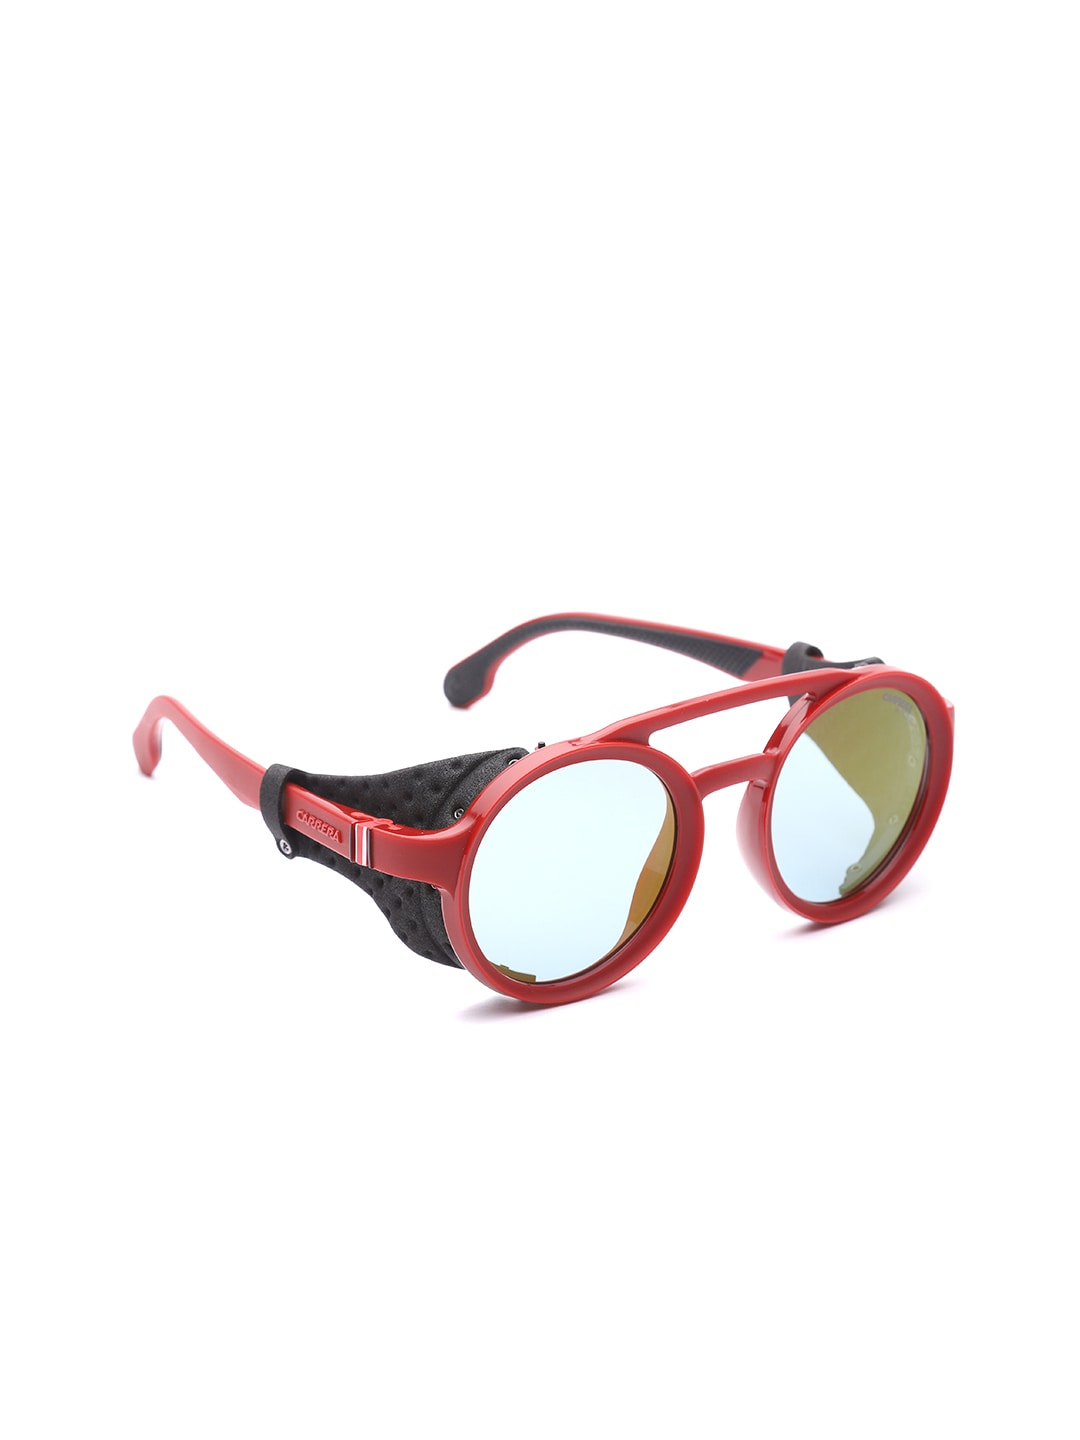 0db5c2a64db Sunglasses S Boxers - Buy Sunglasses S Boxers online in India